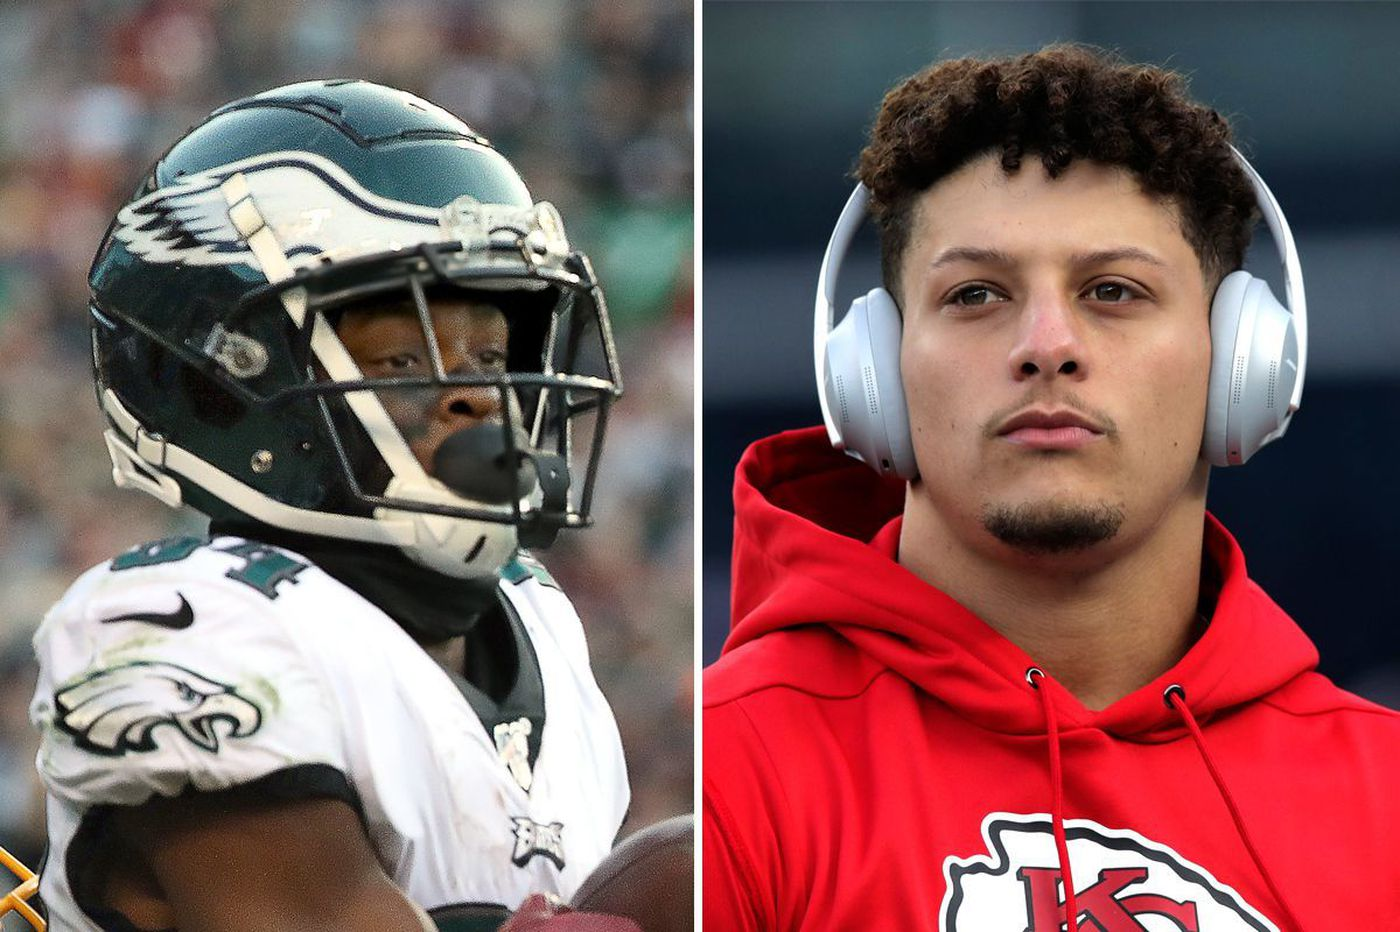 Chiefs' Patrick Mahomes praises Eagles receiver Greg Ward on Twitter. The two have some history.